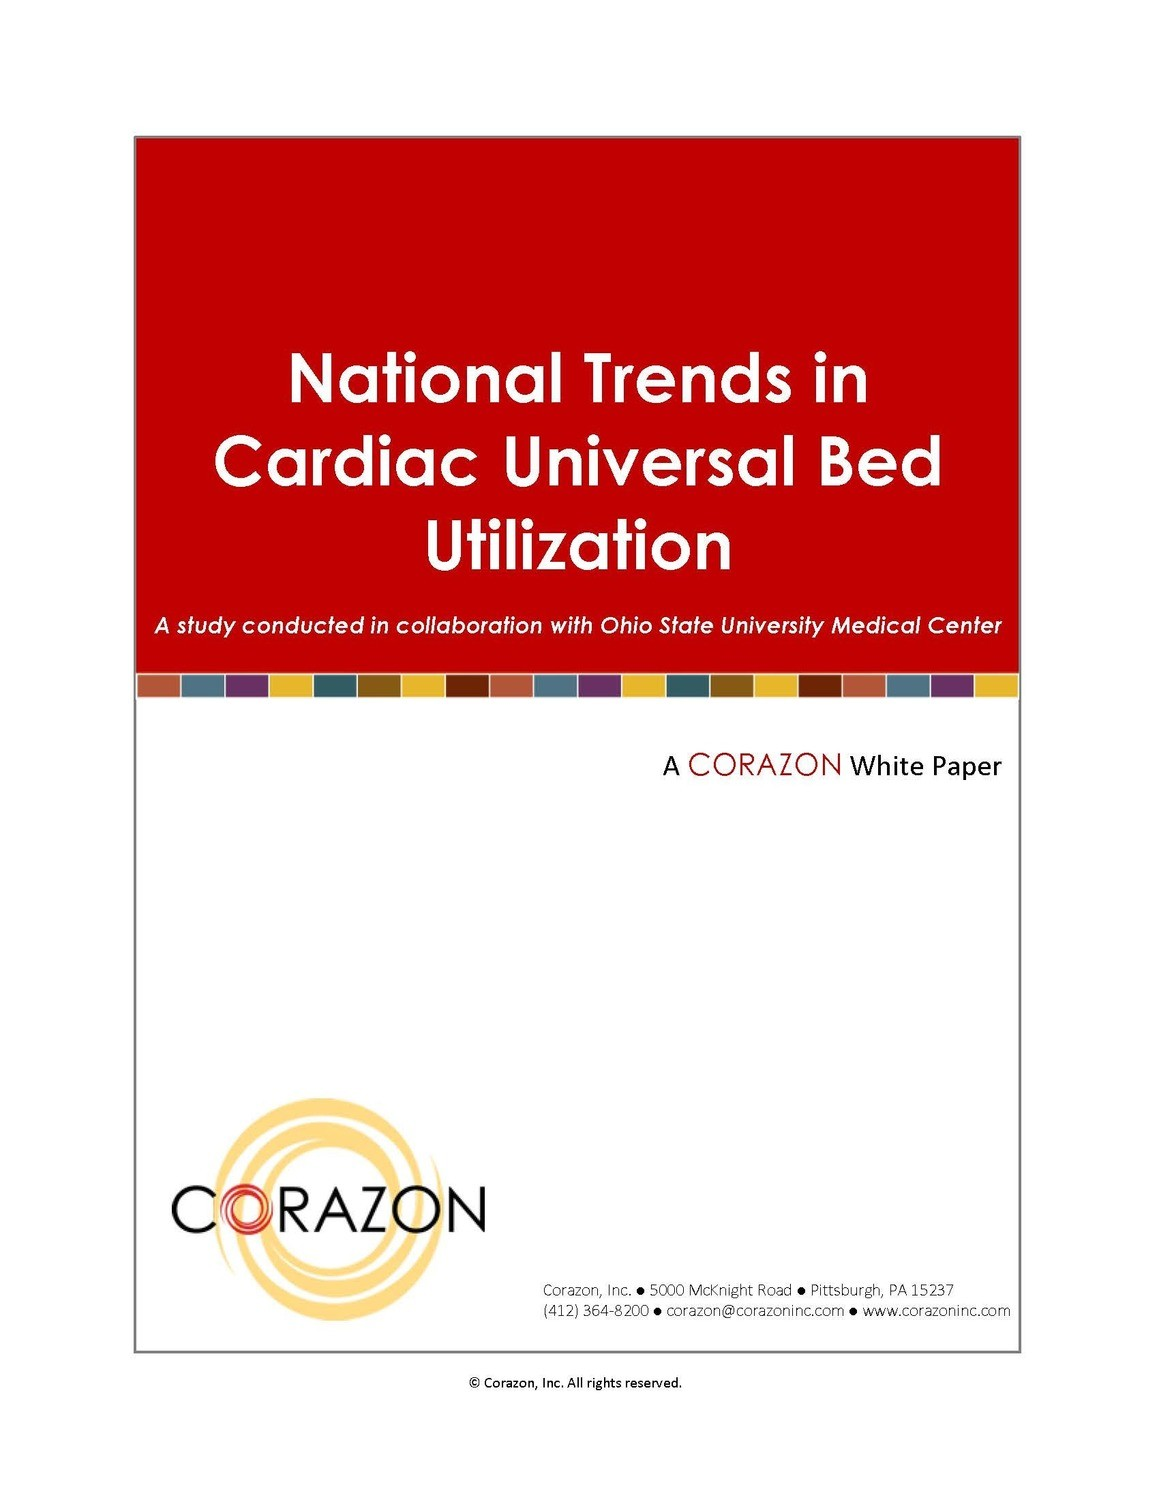 National Trends in Cardiac Universal Bed Utilization